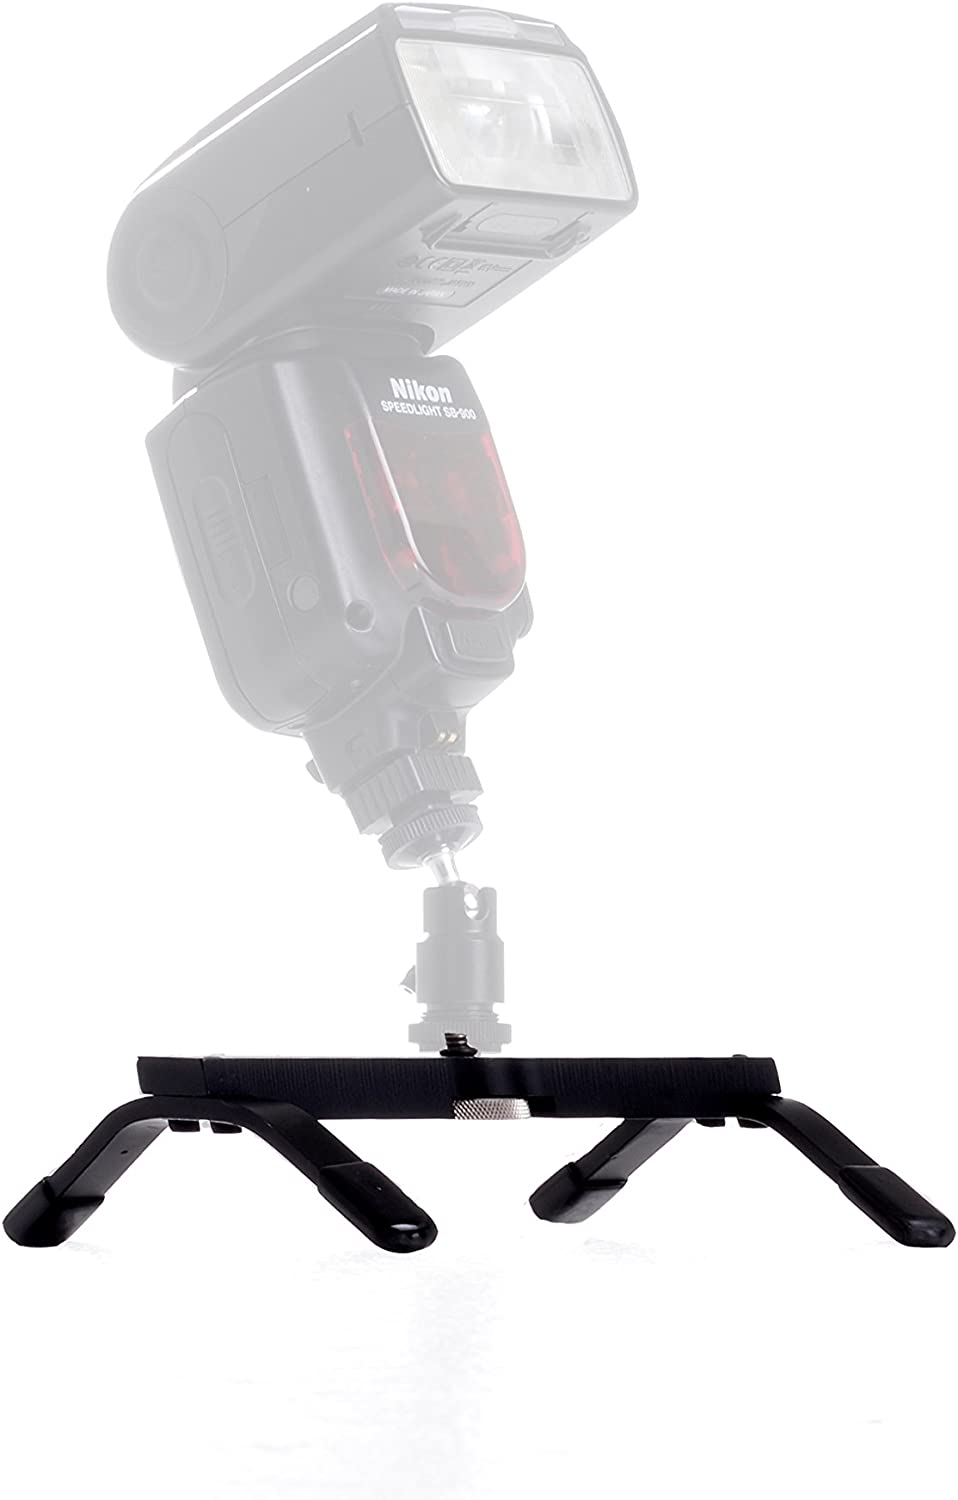 stable platform for your DSLR low profile camera tripod Gopro protects equipment bracket off camera flash Camera mount- camera support lightweight -studio /& location weddings